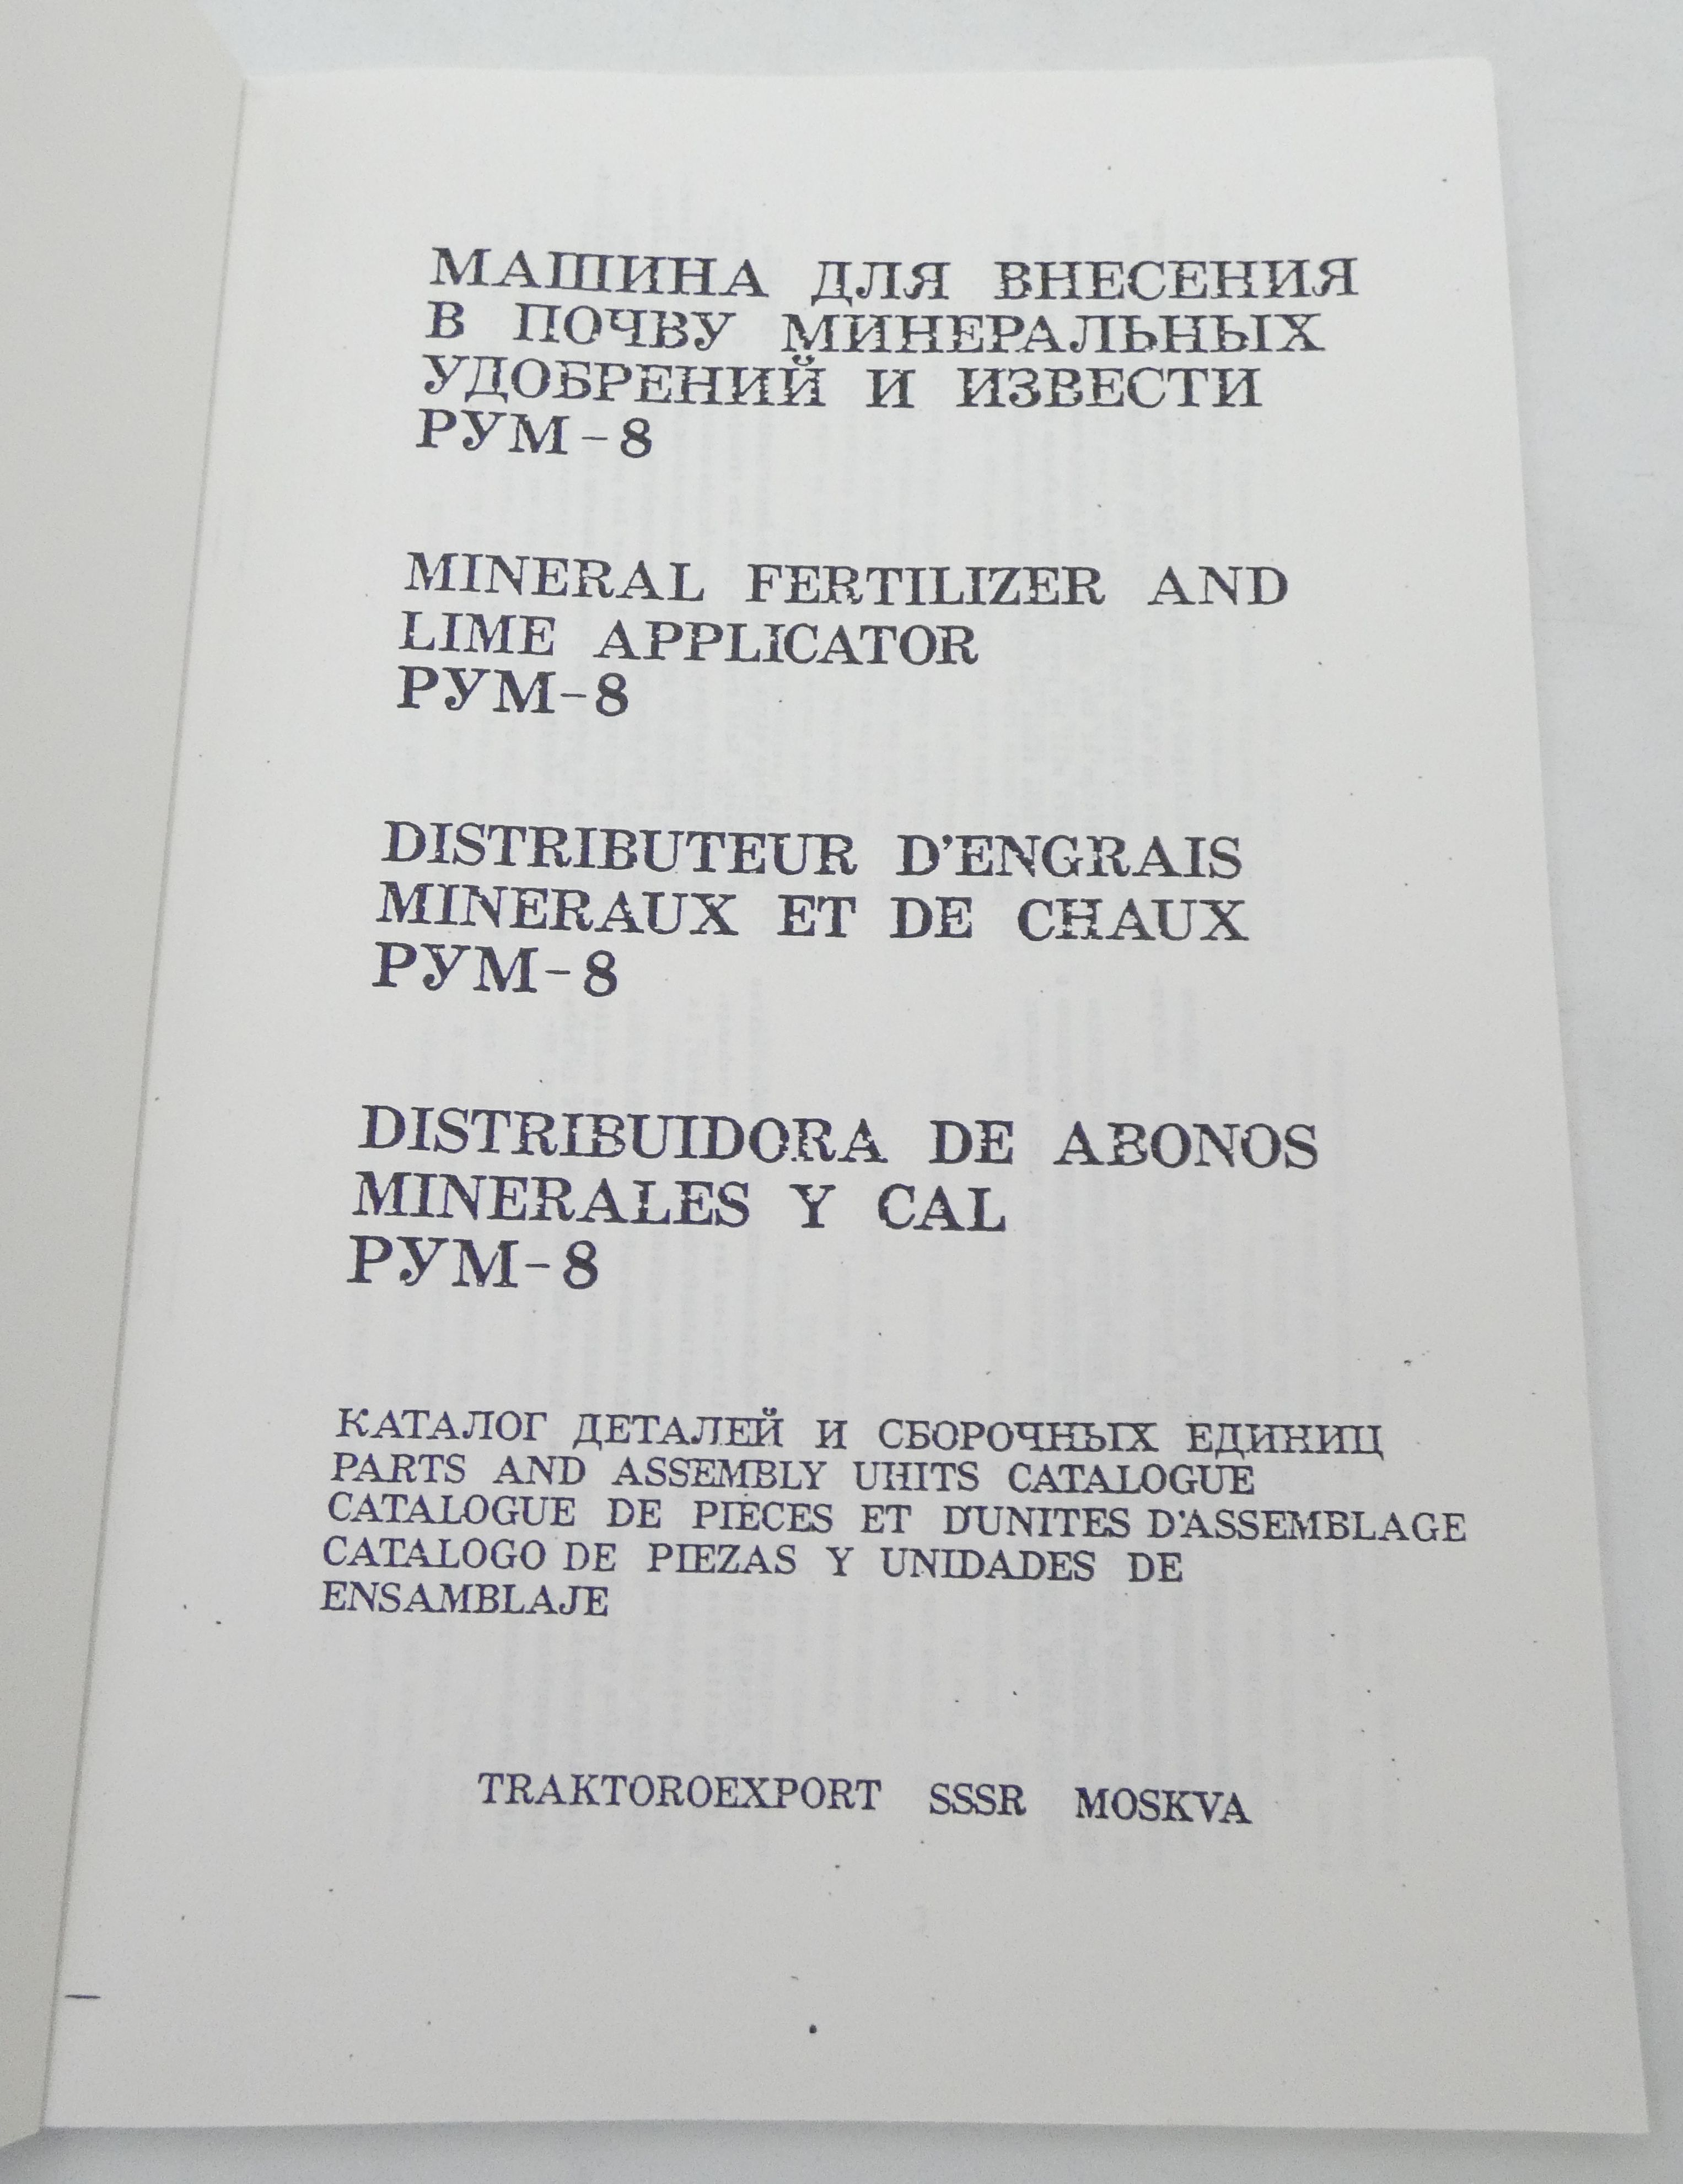 Belarus mineral fertilizer and lyme applicator PYM-8 parts and assembly units catalogue